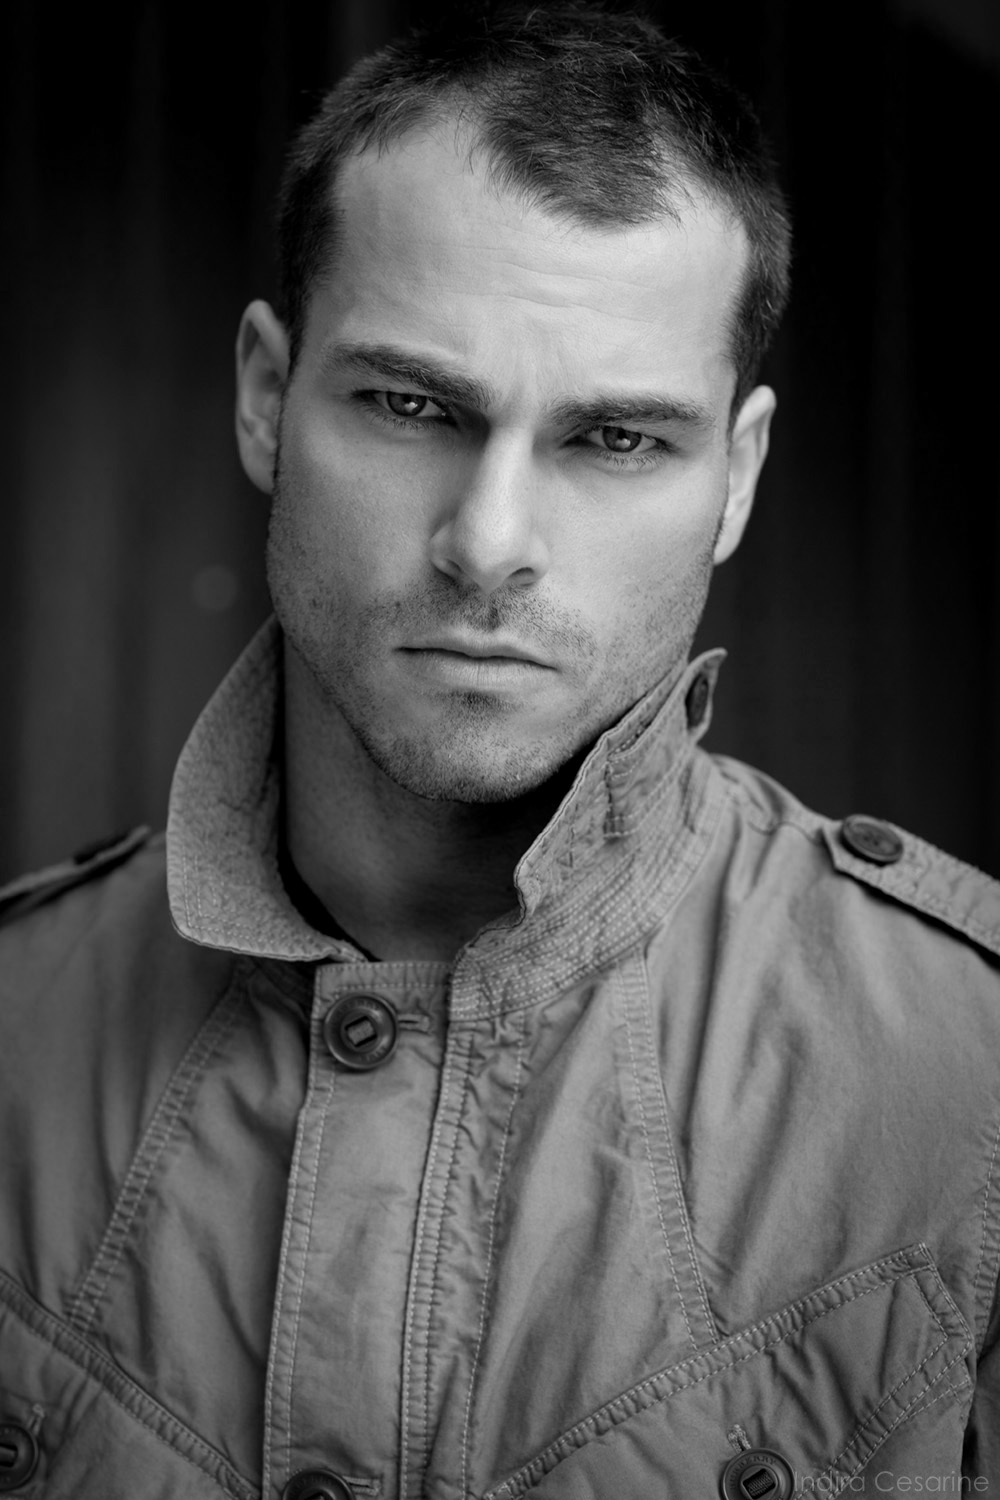 Shawn-Roberts-Photography-by-Indira-Cesarine-019-bw.jpg